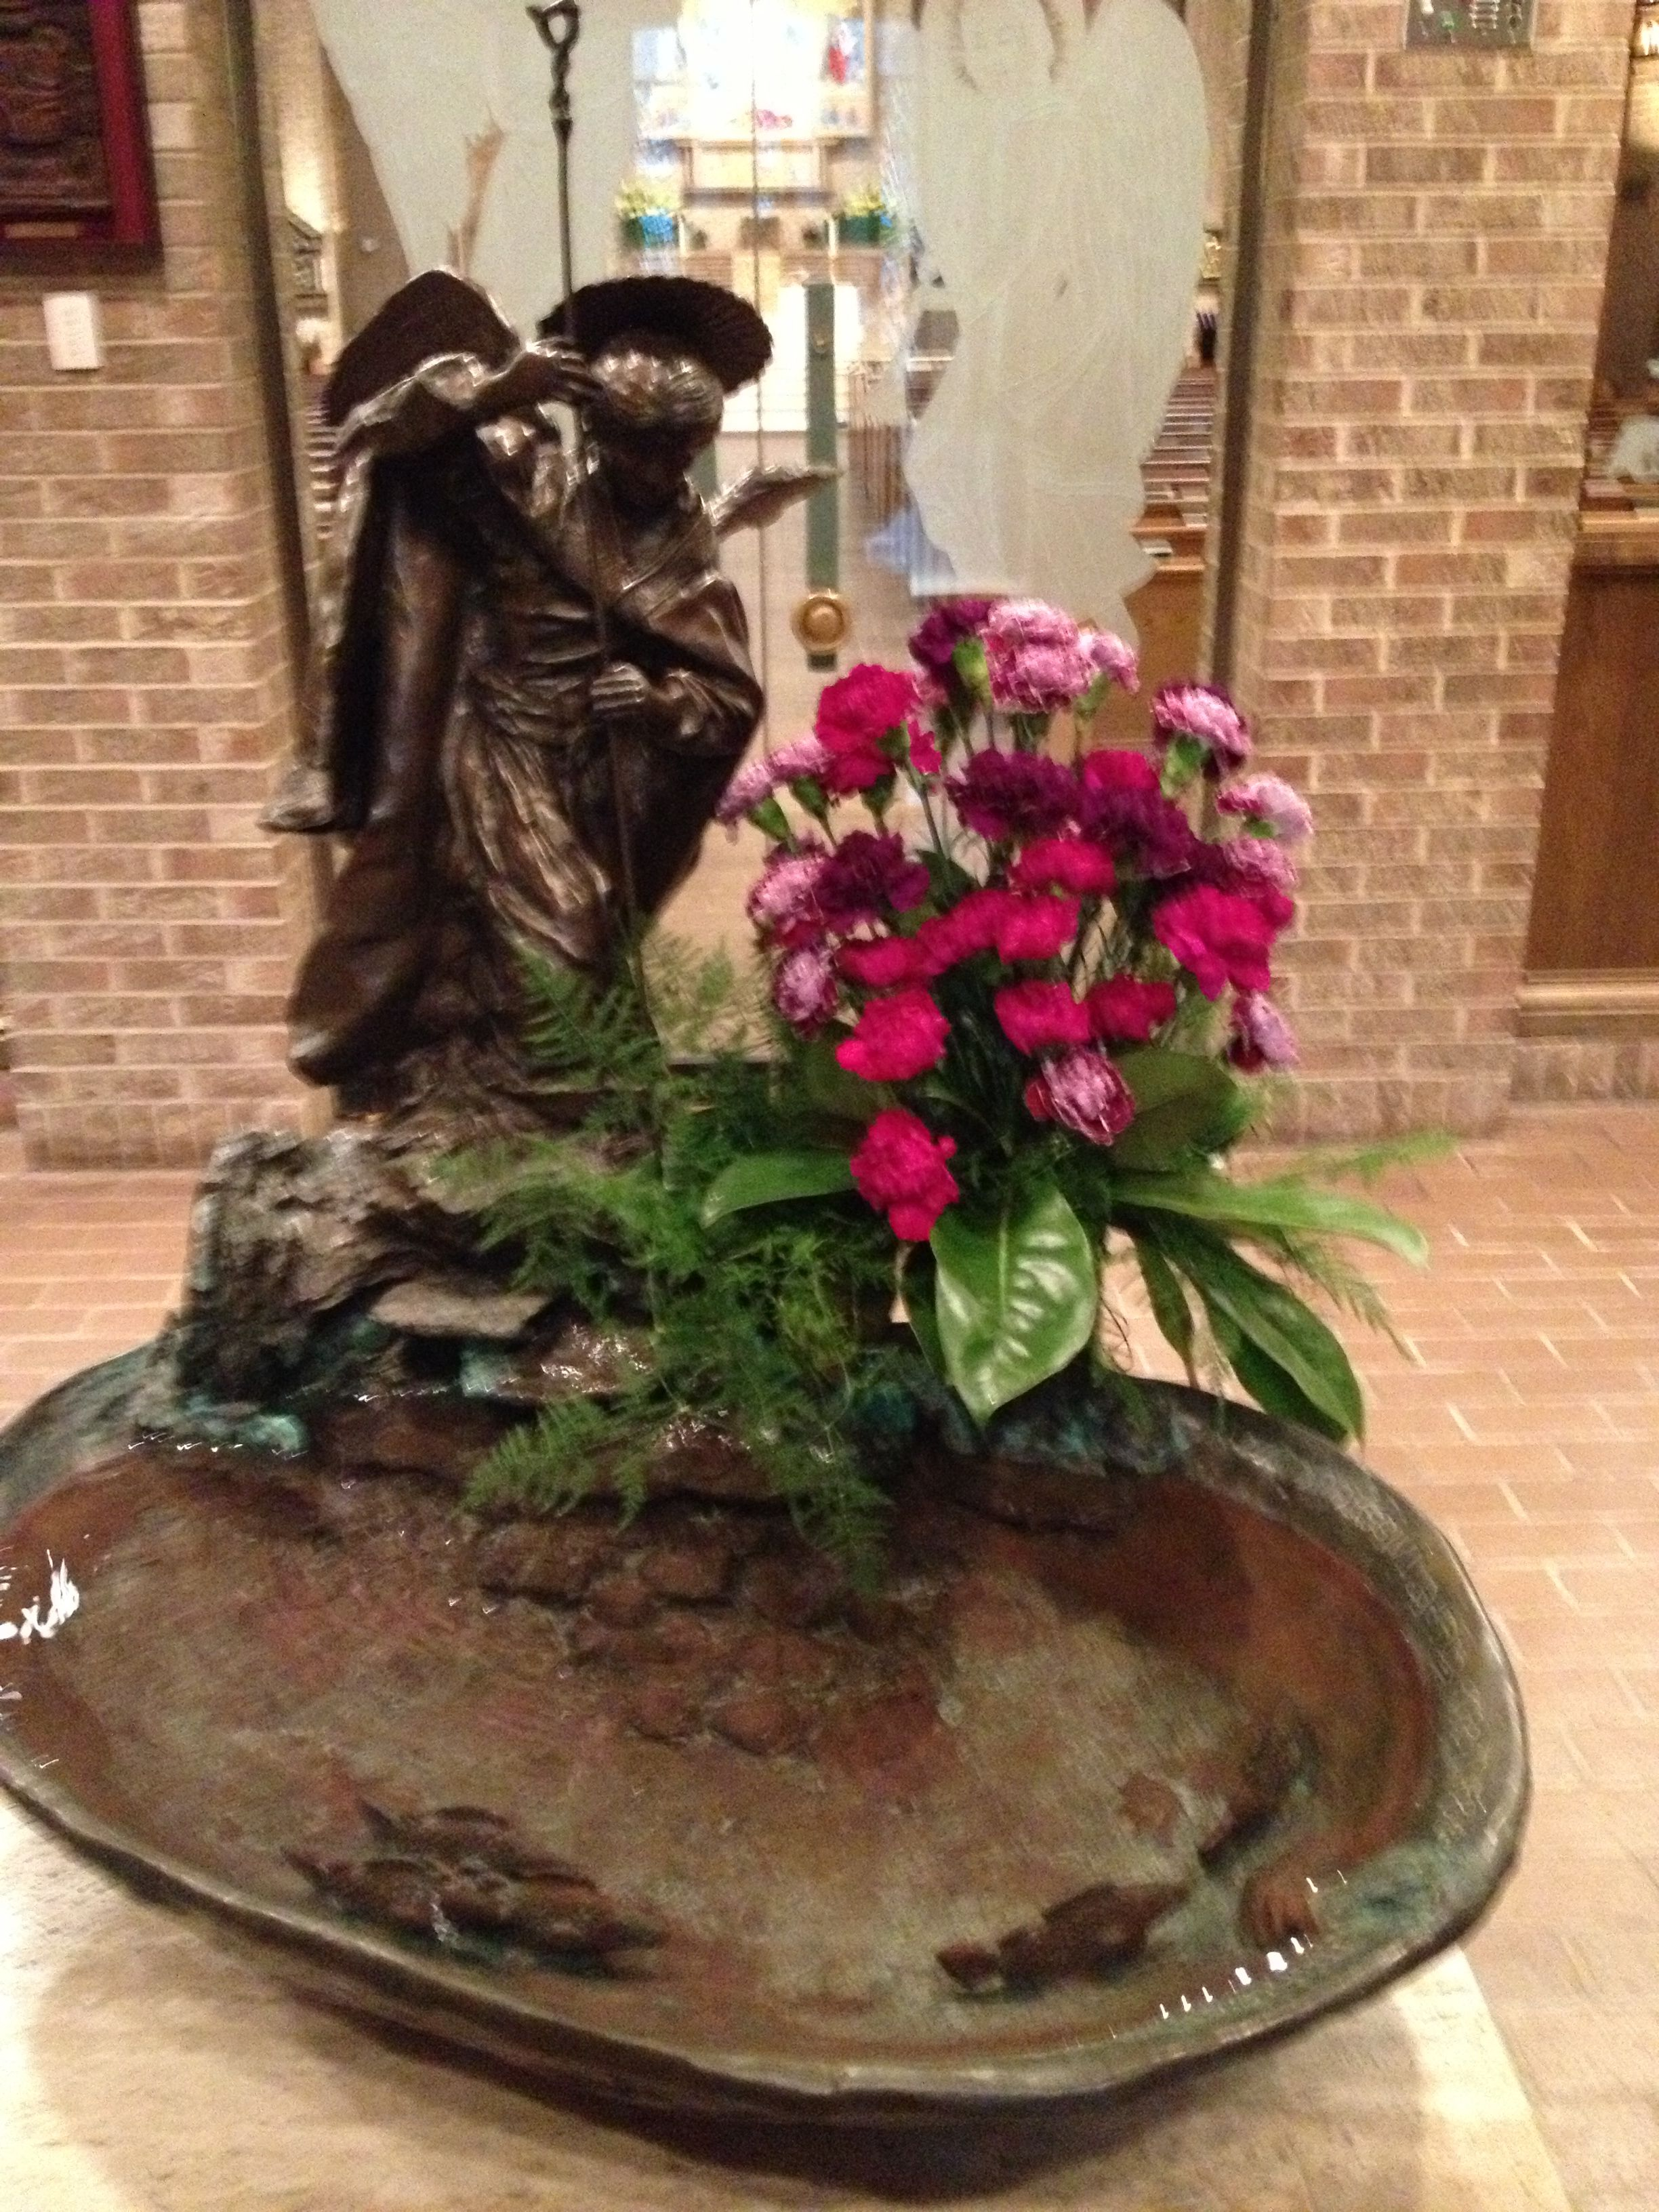 Font Church Of Transfiguration Dallas Tx February 10 2013 Altar